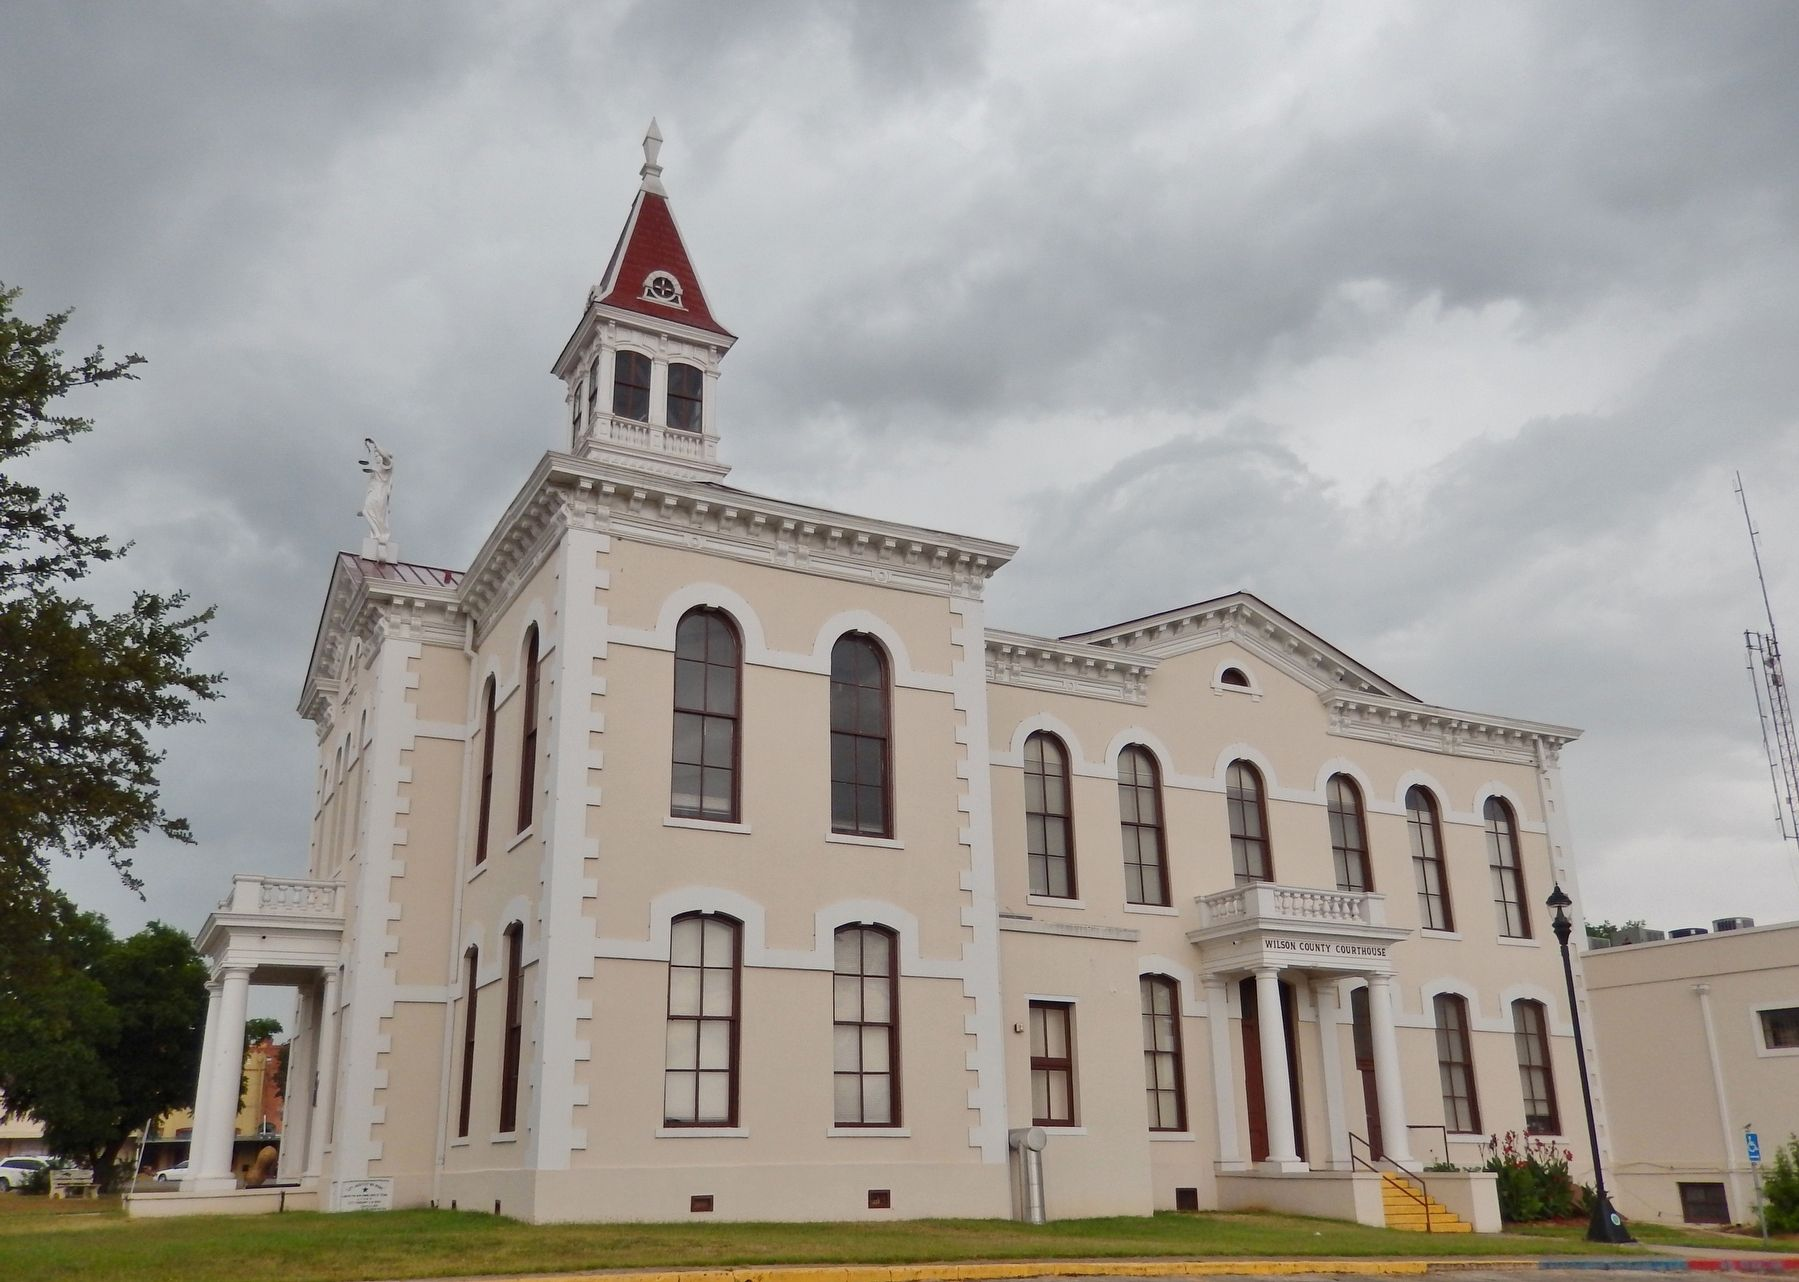 Wilson County Courthouse (<i>south side view</i>) image. Click for full size.